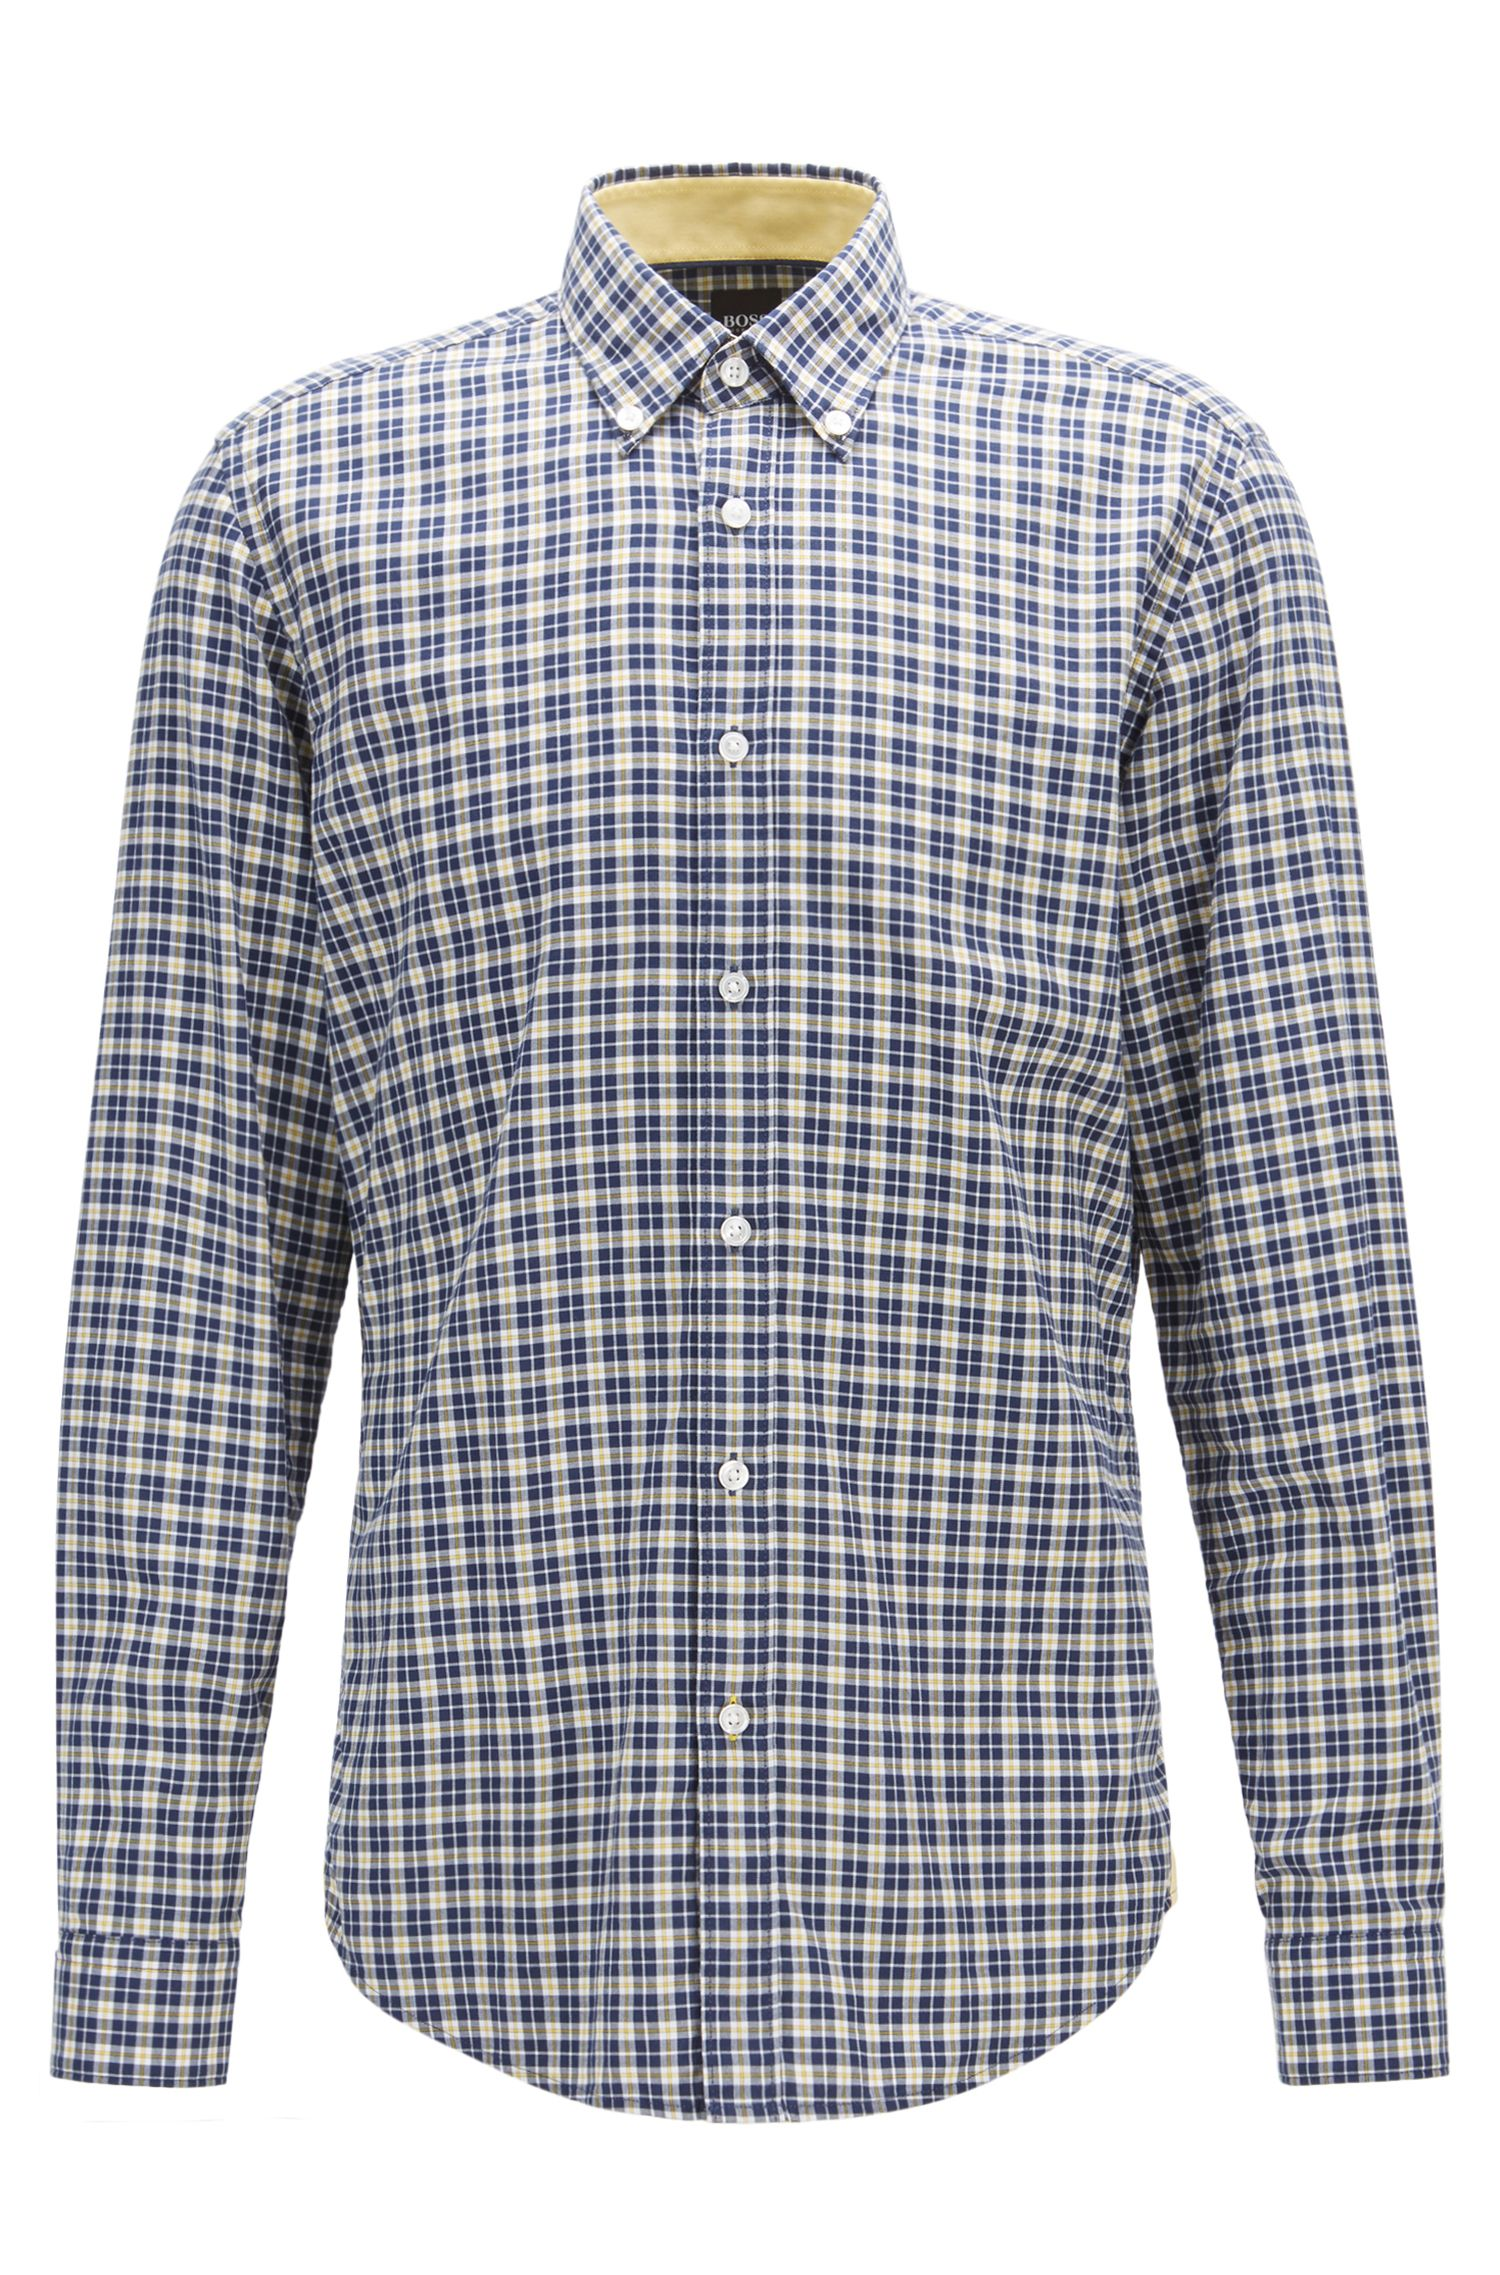 Camicia regular fit in twill di cotone a quadri